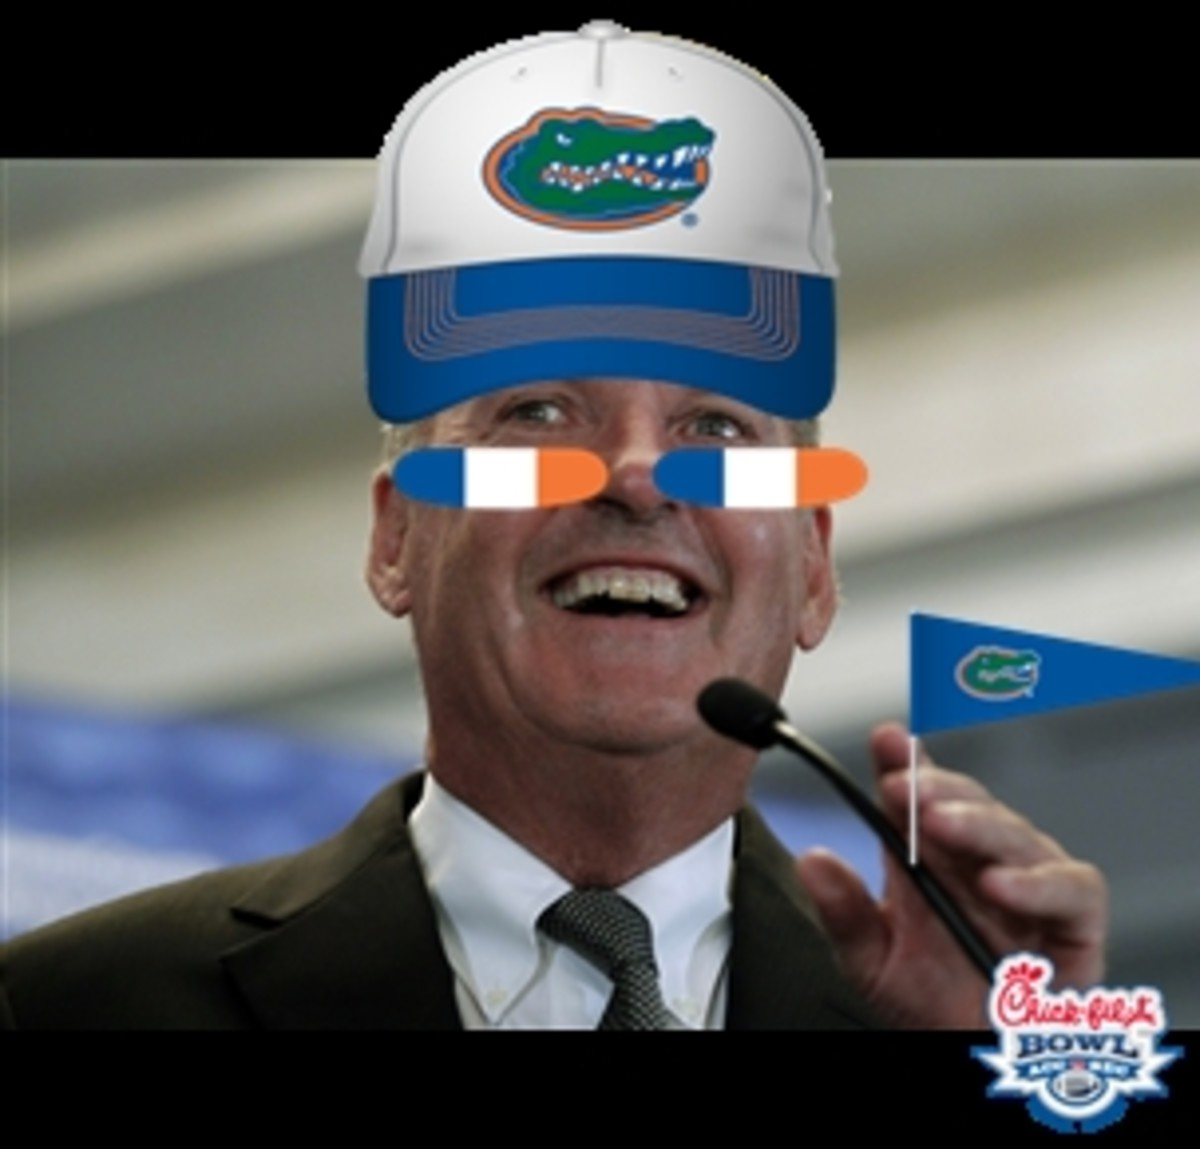 Commissioner Delany, can we get a little Gator Chomp?